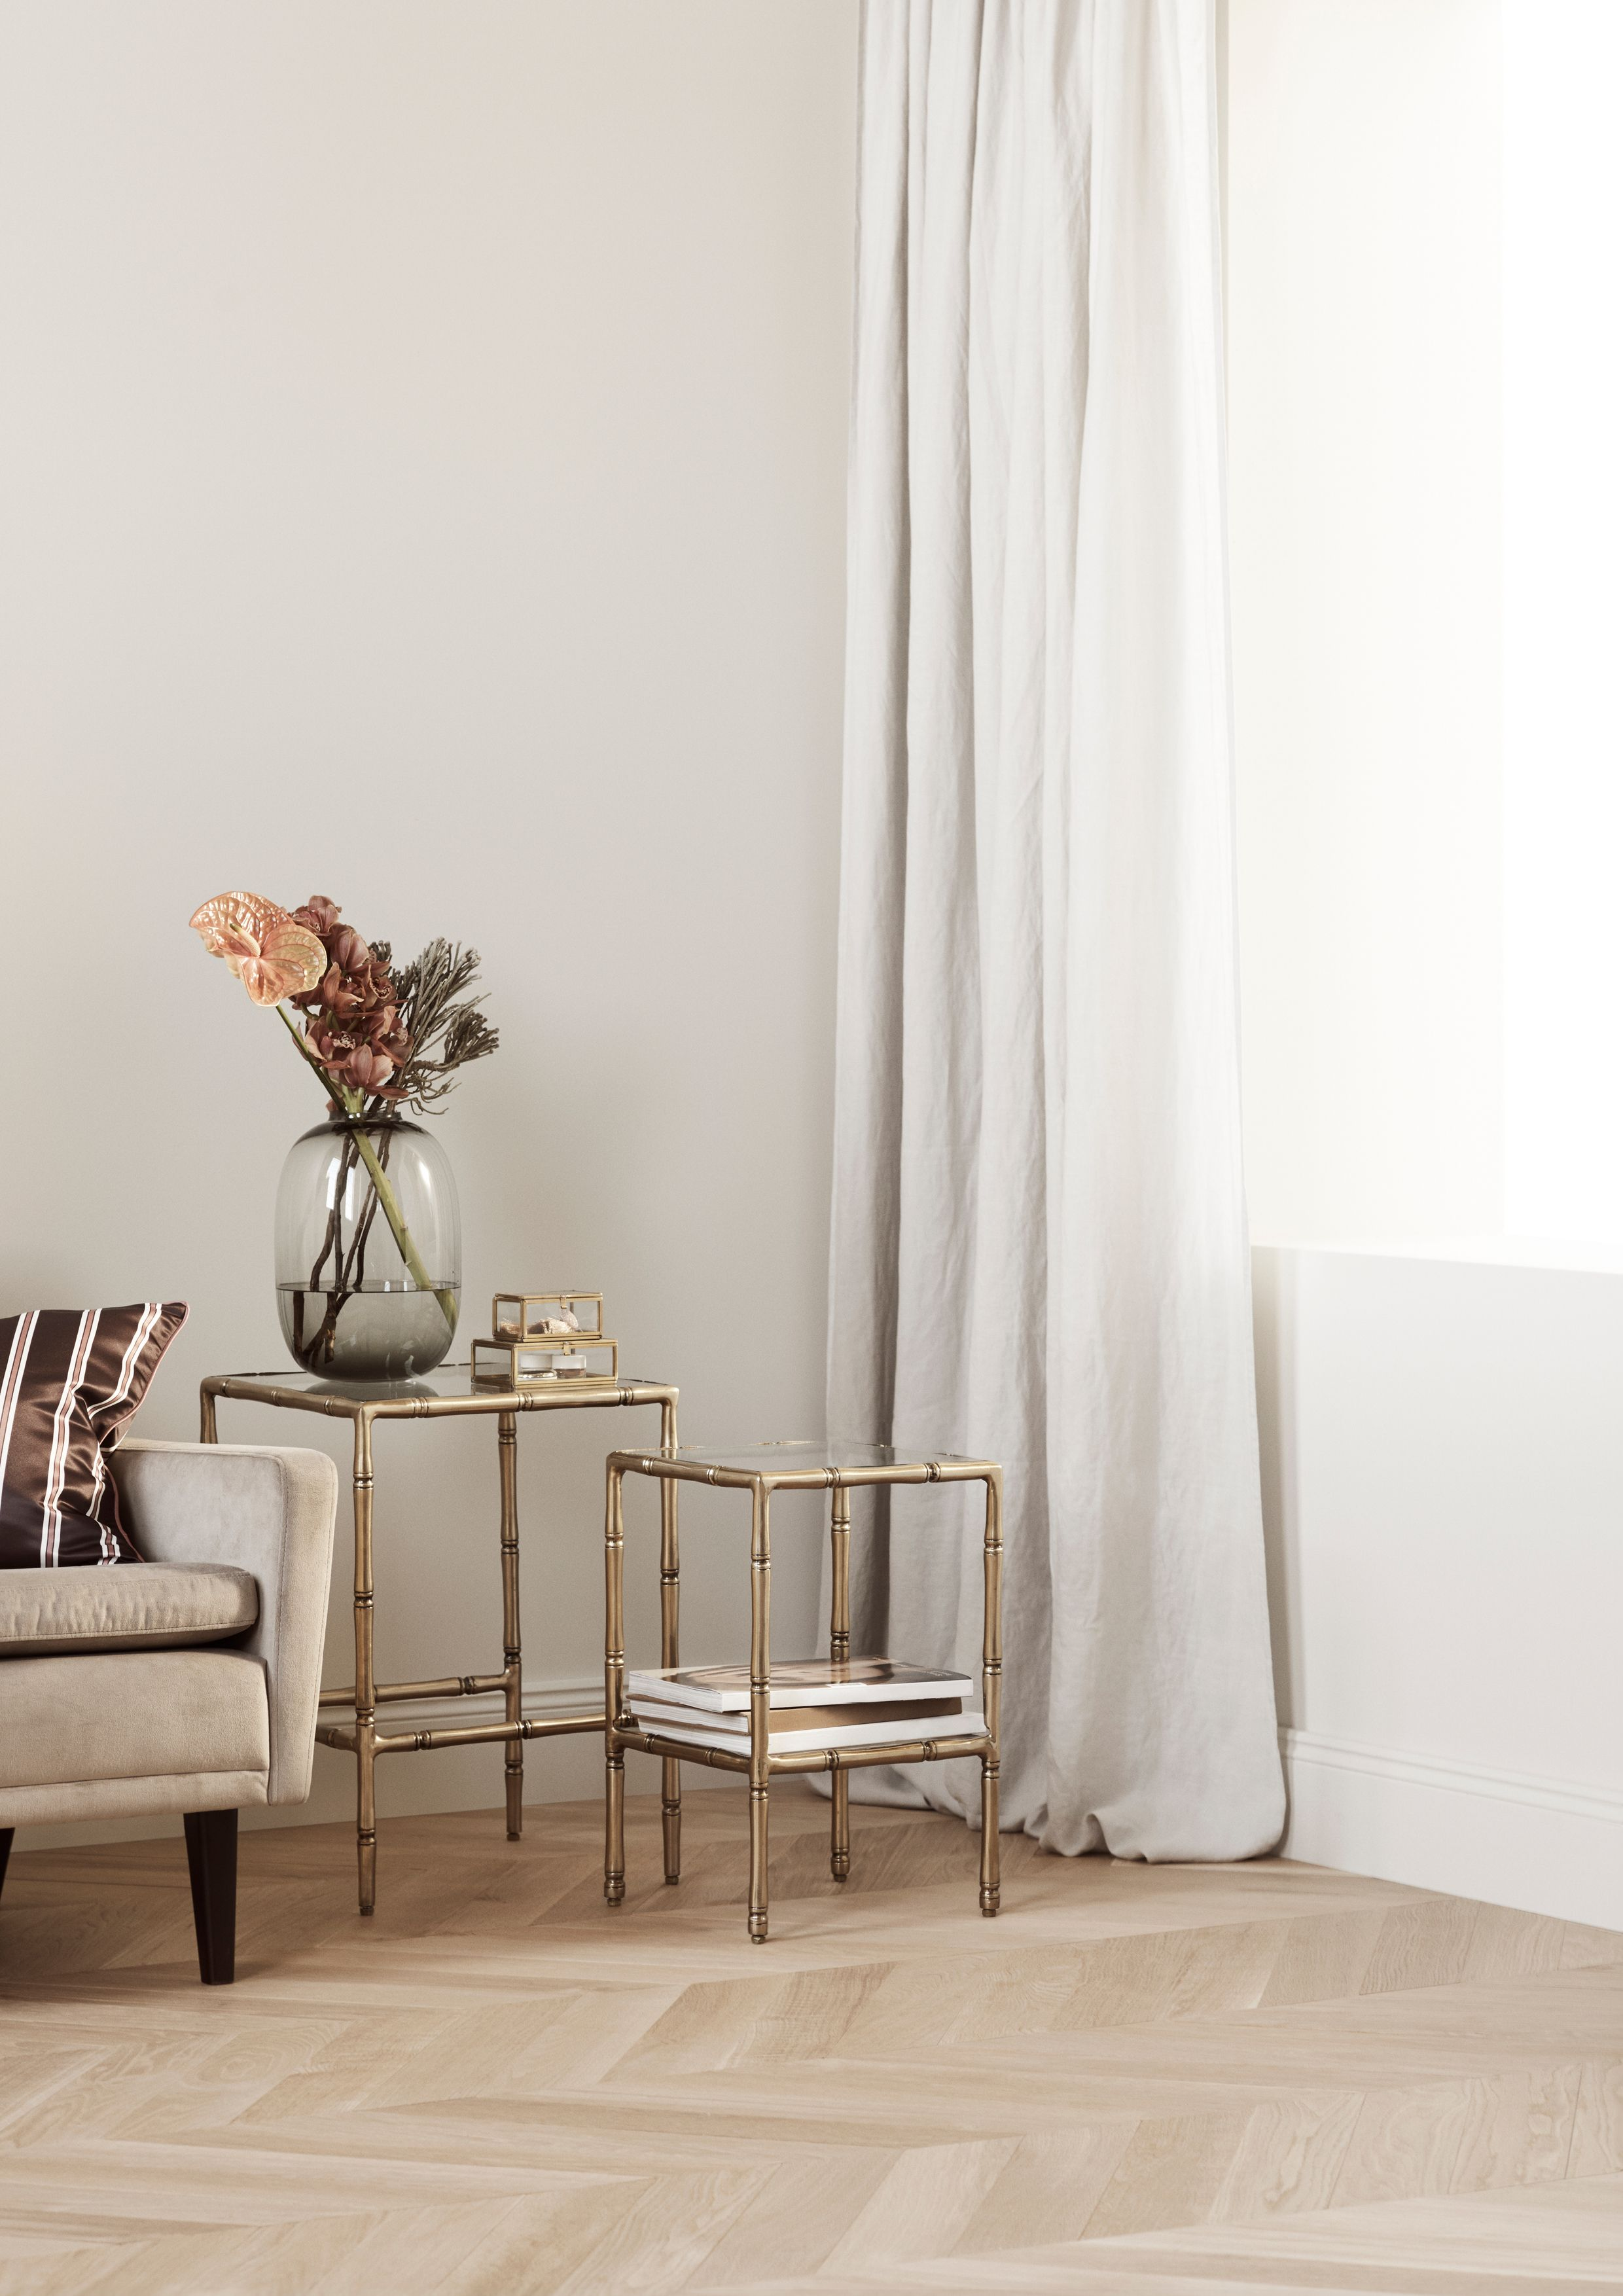 Charmant Hu0026M Home Furniture Collection